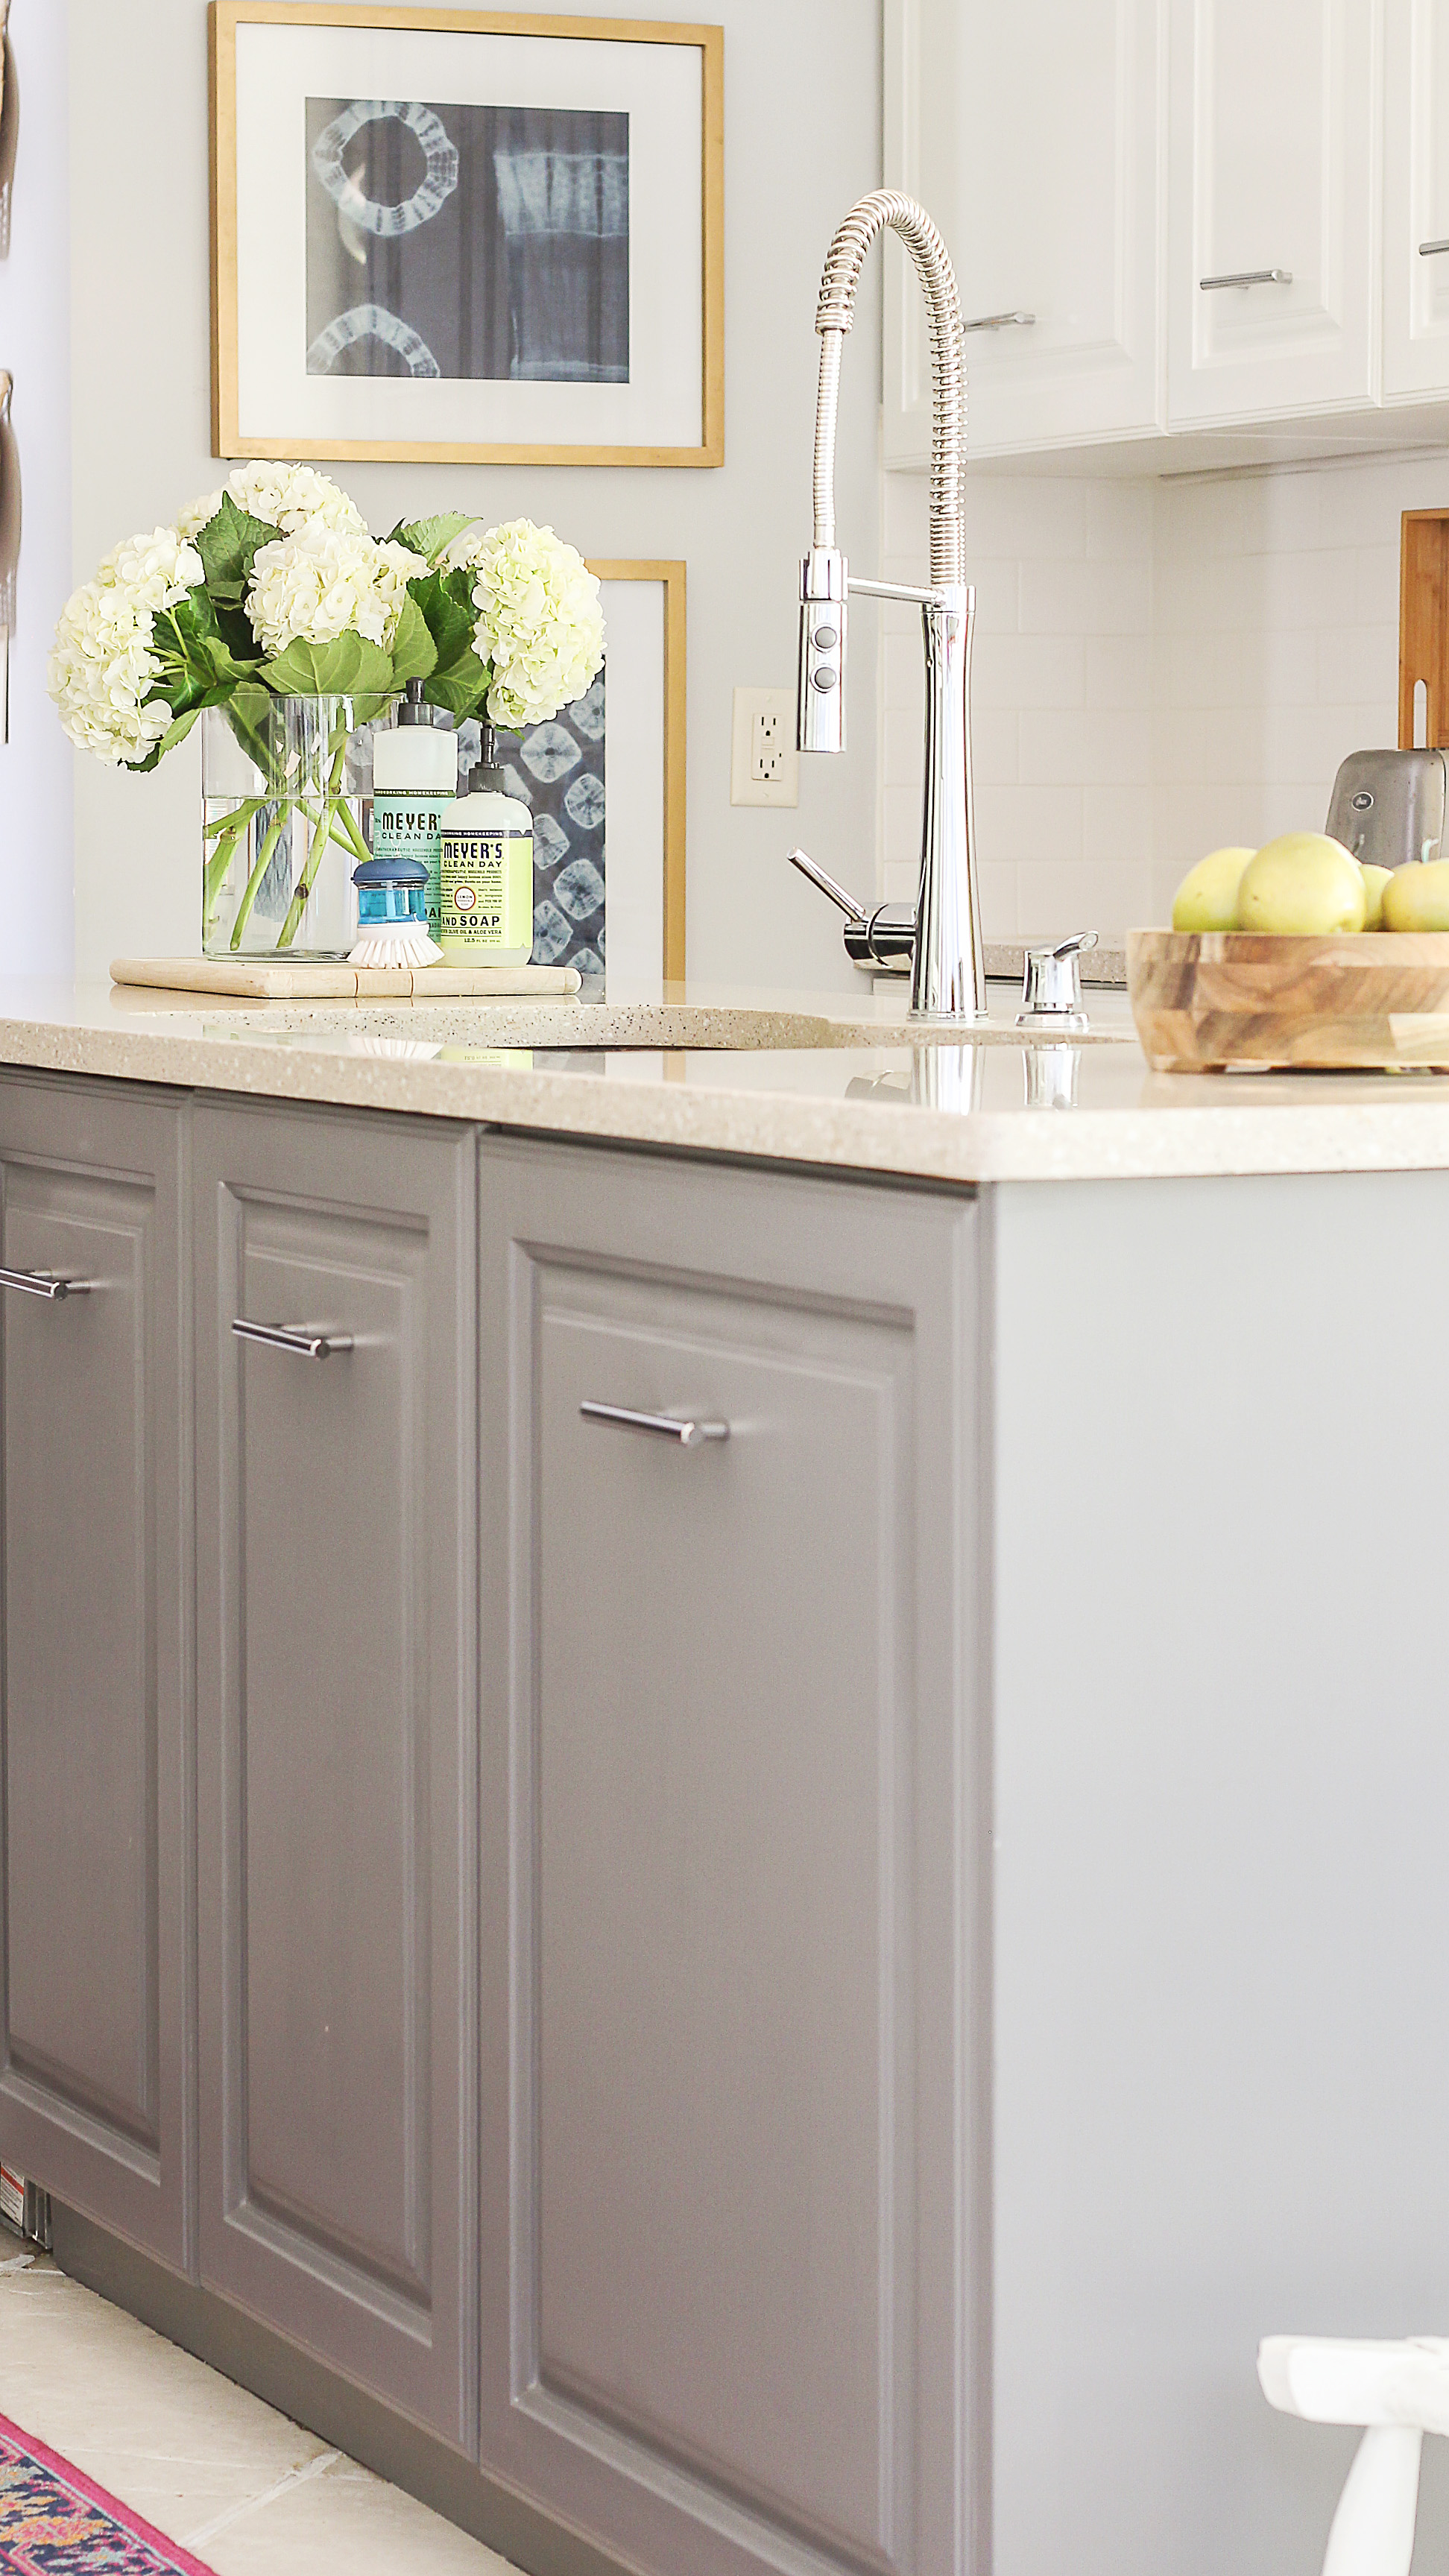 fastest way to paint kitchen cabinets the ultimate hack rh designingvibes com cost paint kitchen cabinets wagner power painter kitchen cabinets